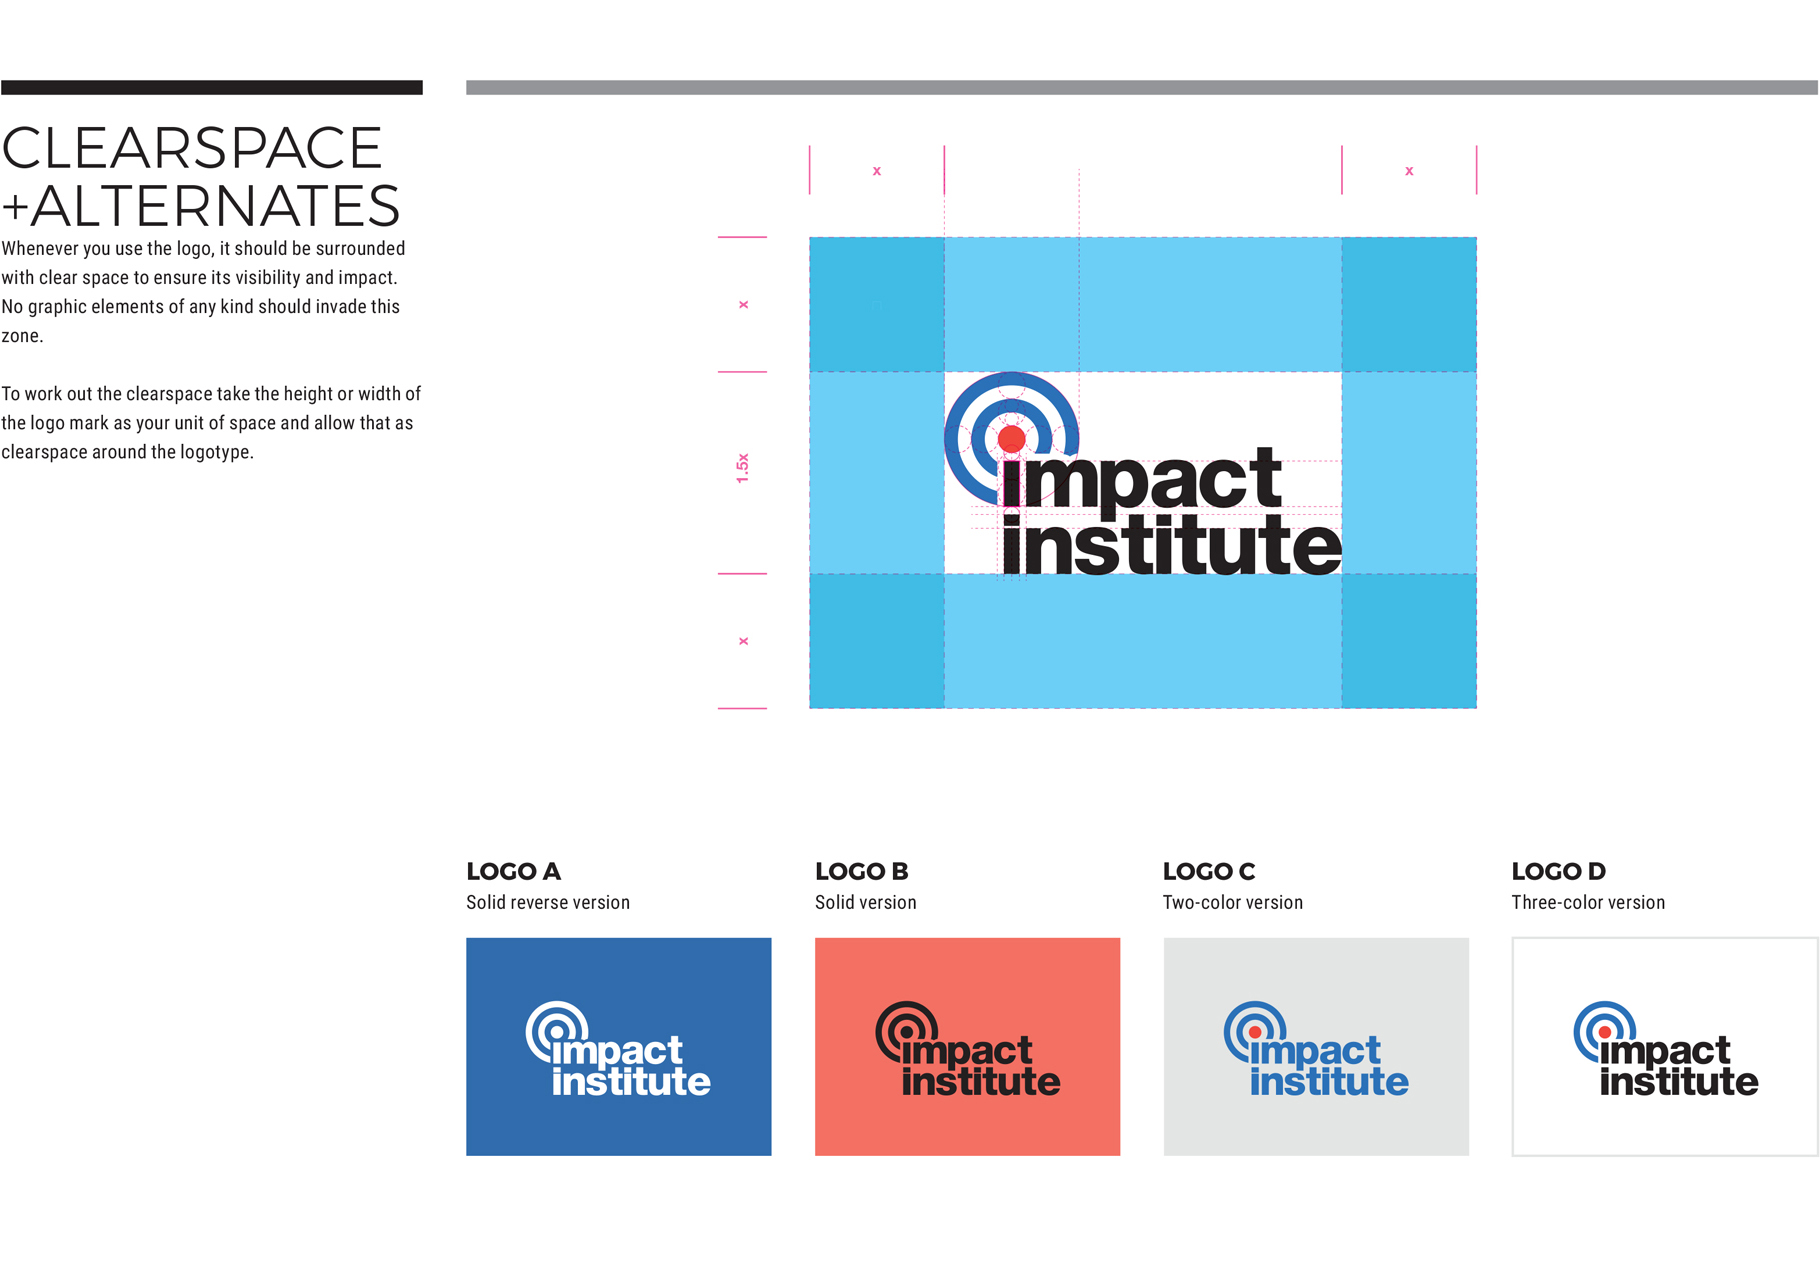 Impact Institute logo laid out on a grid and displayed in different variations of red and blue color arrangements